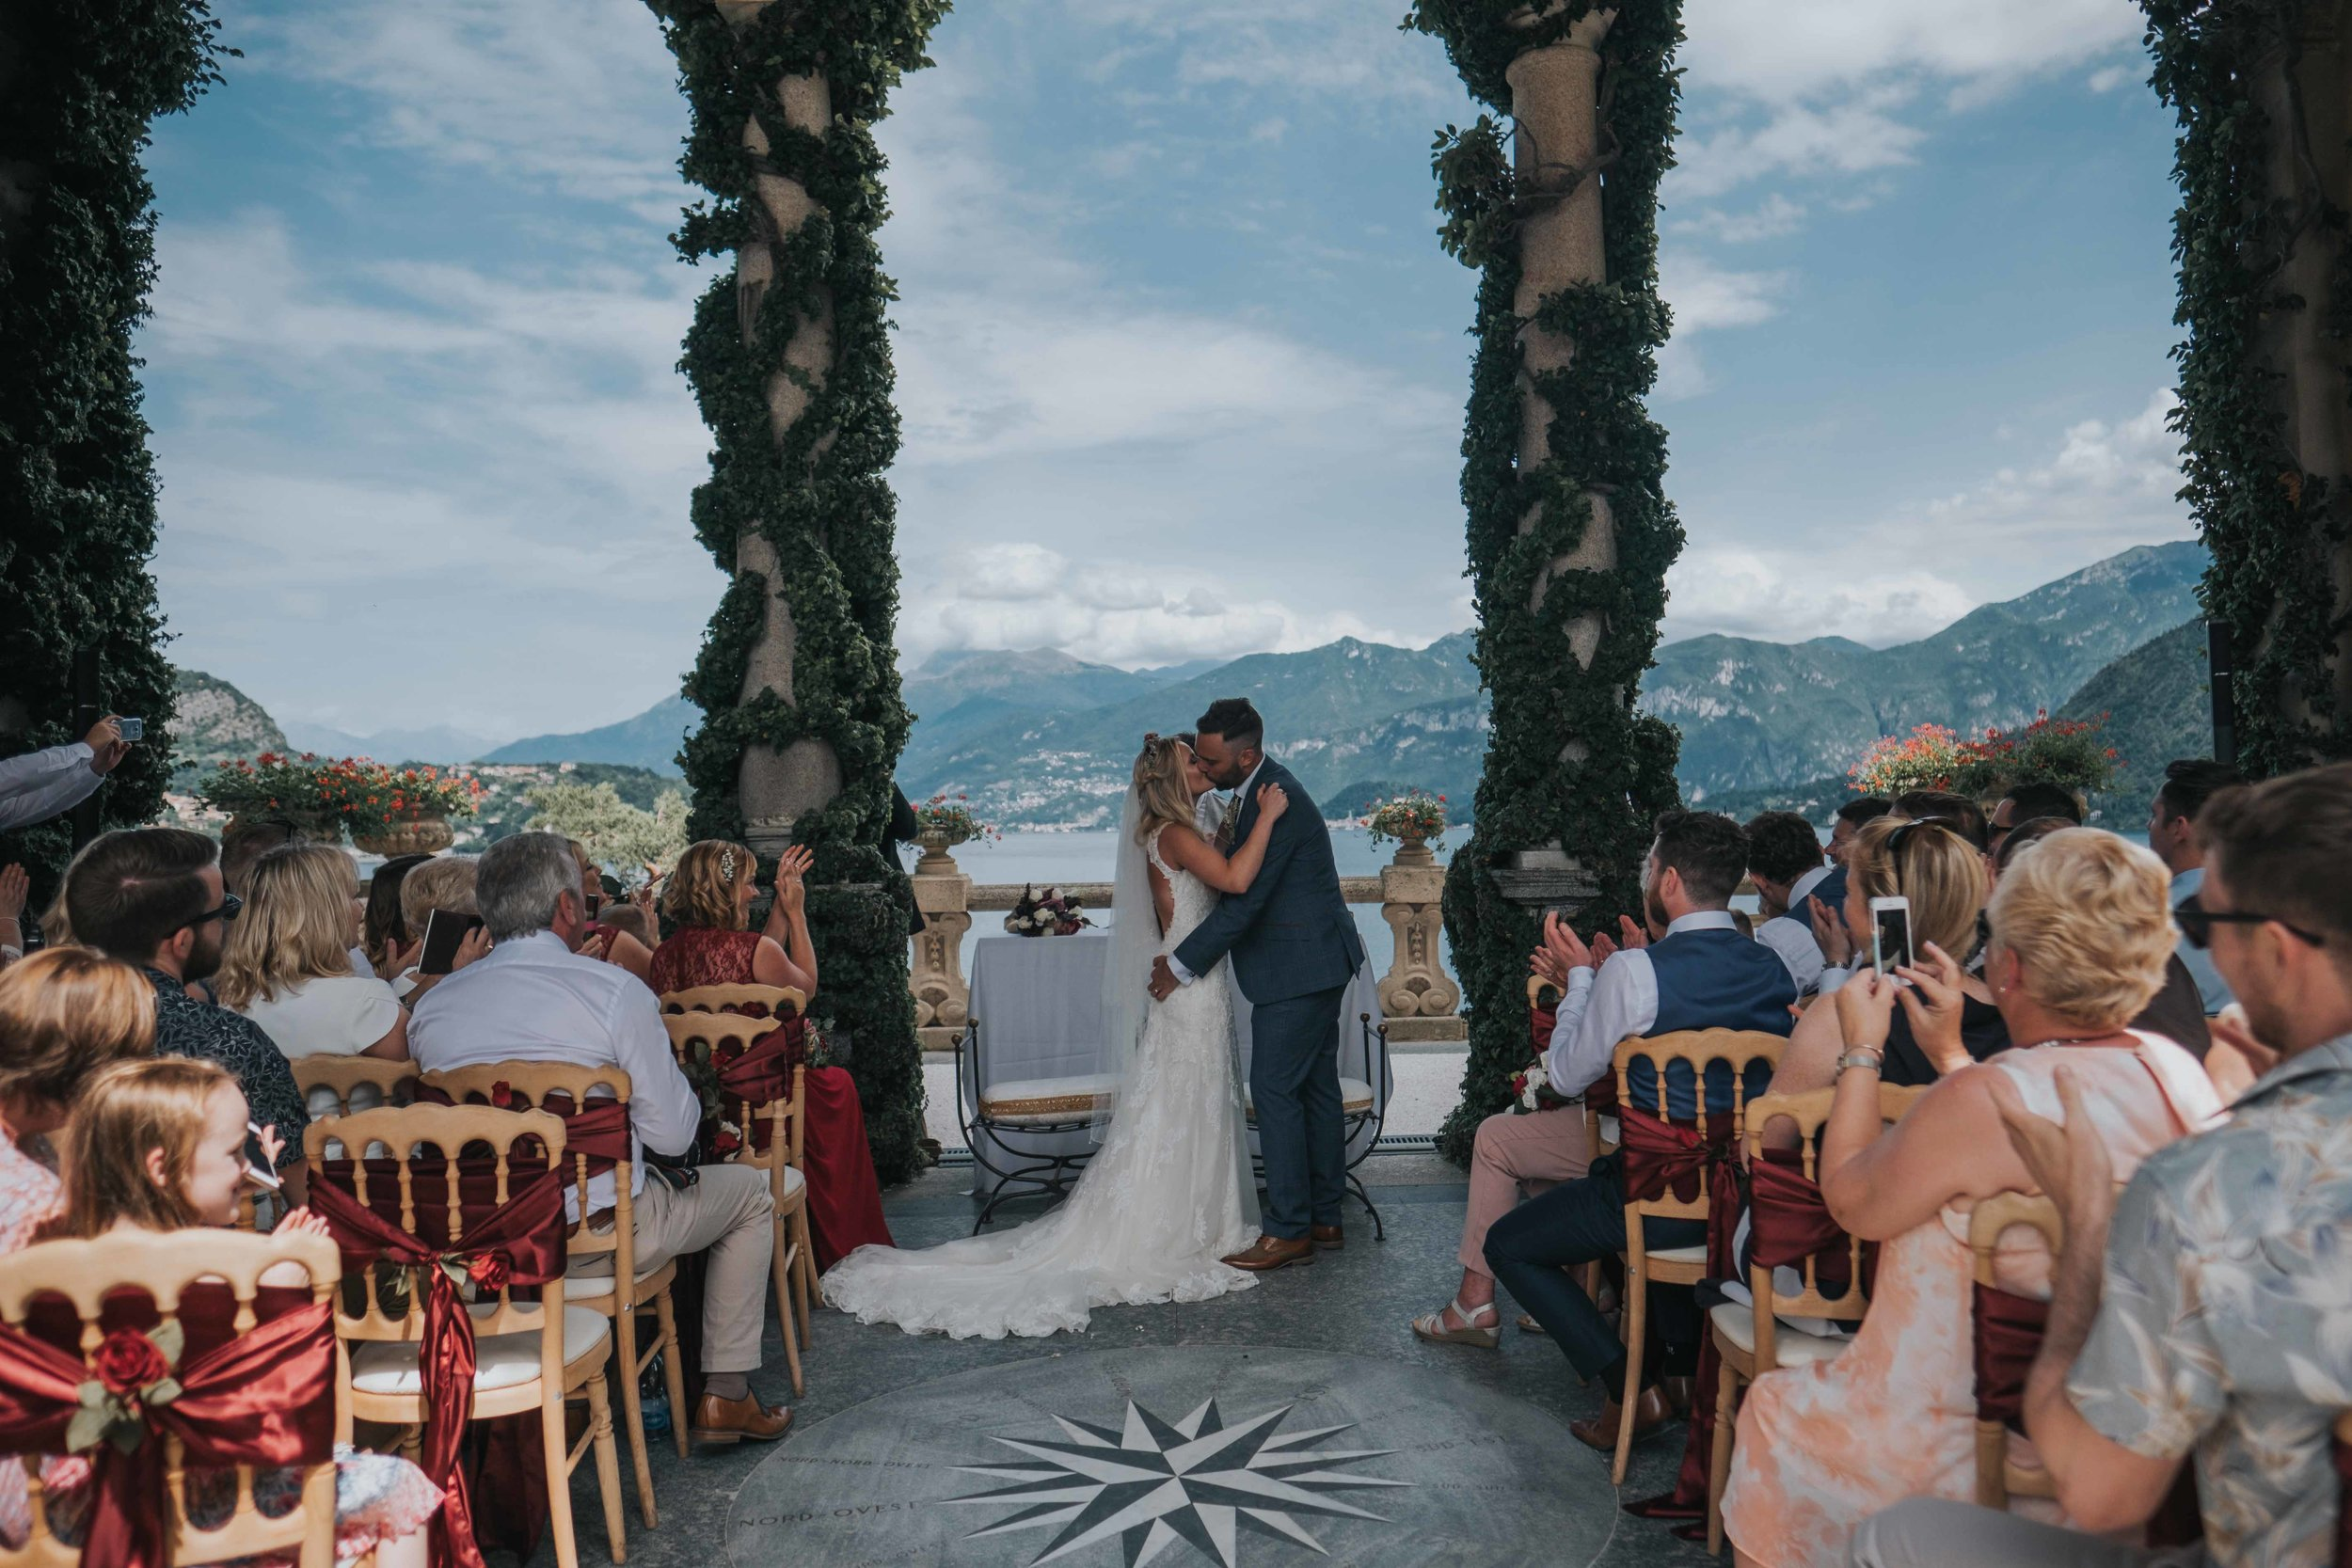 Laco Como Italy destination wedding photographer cheshire north west england documentry photography (56 of 117).jpg